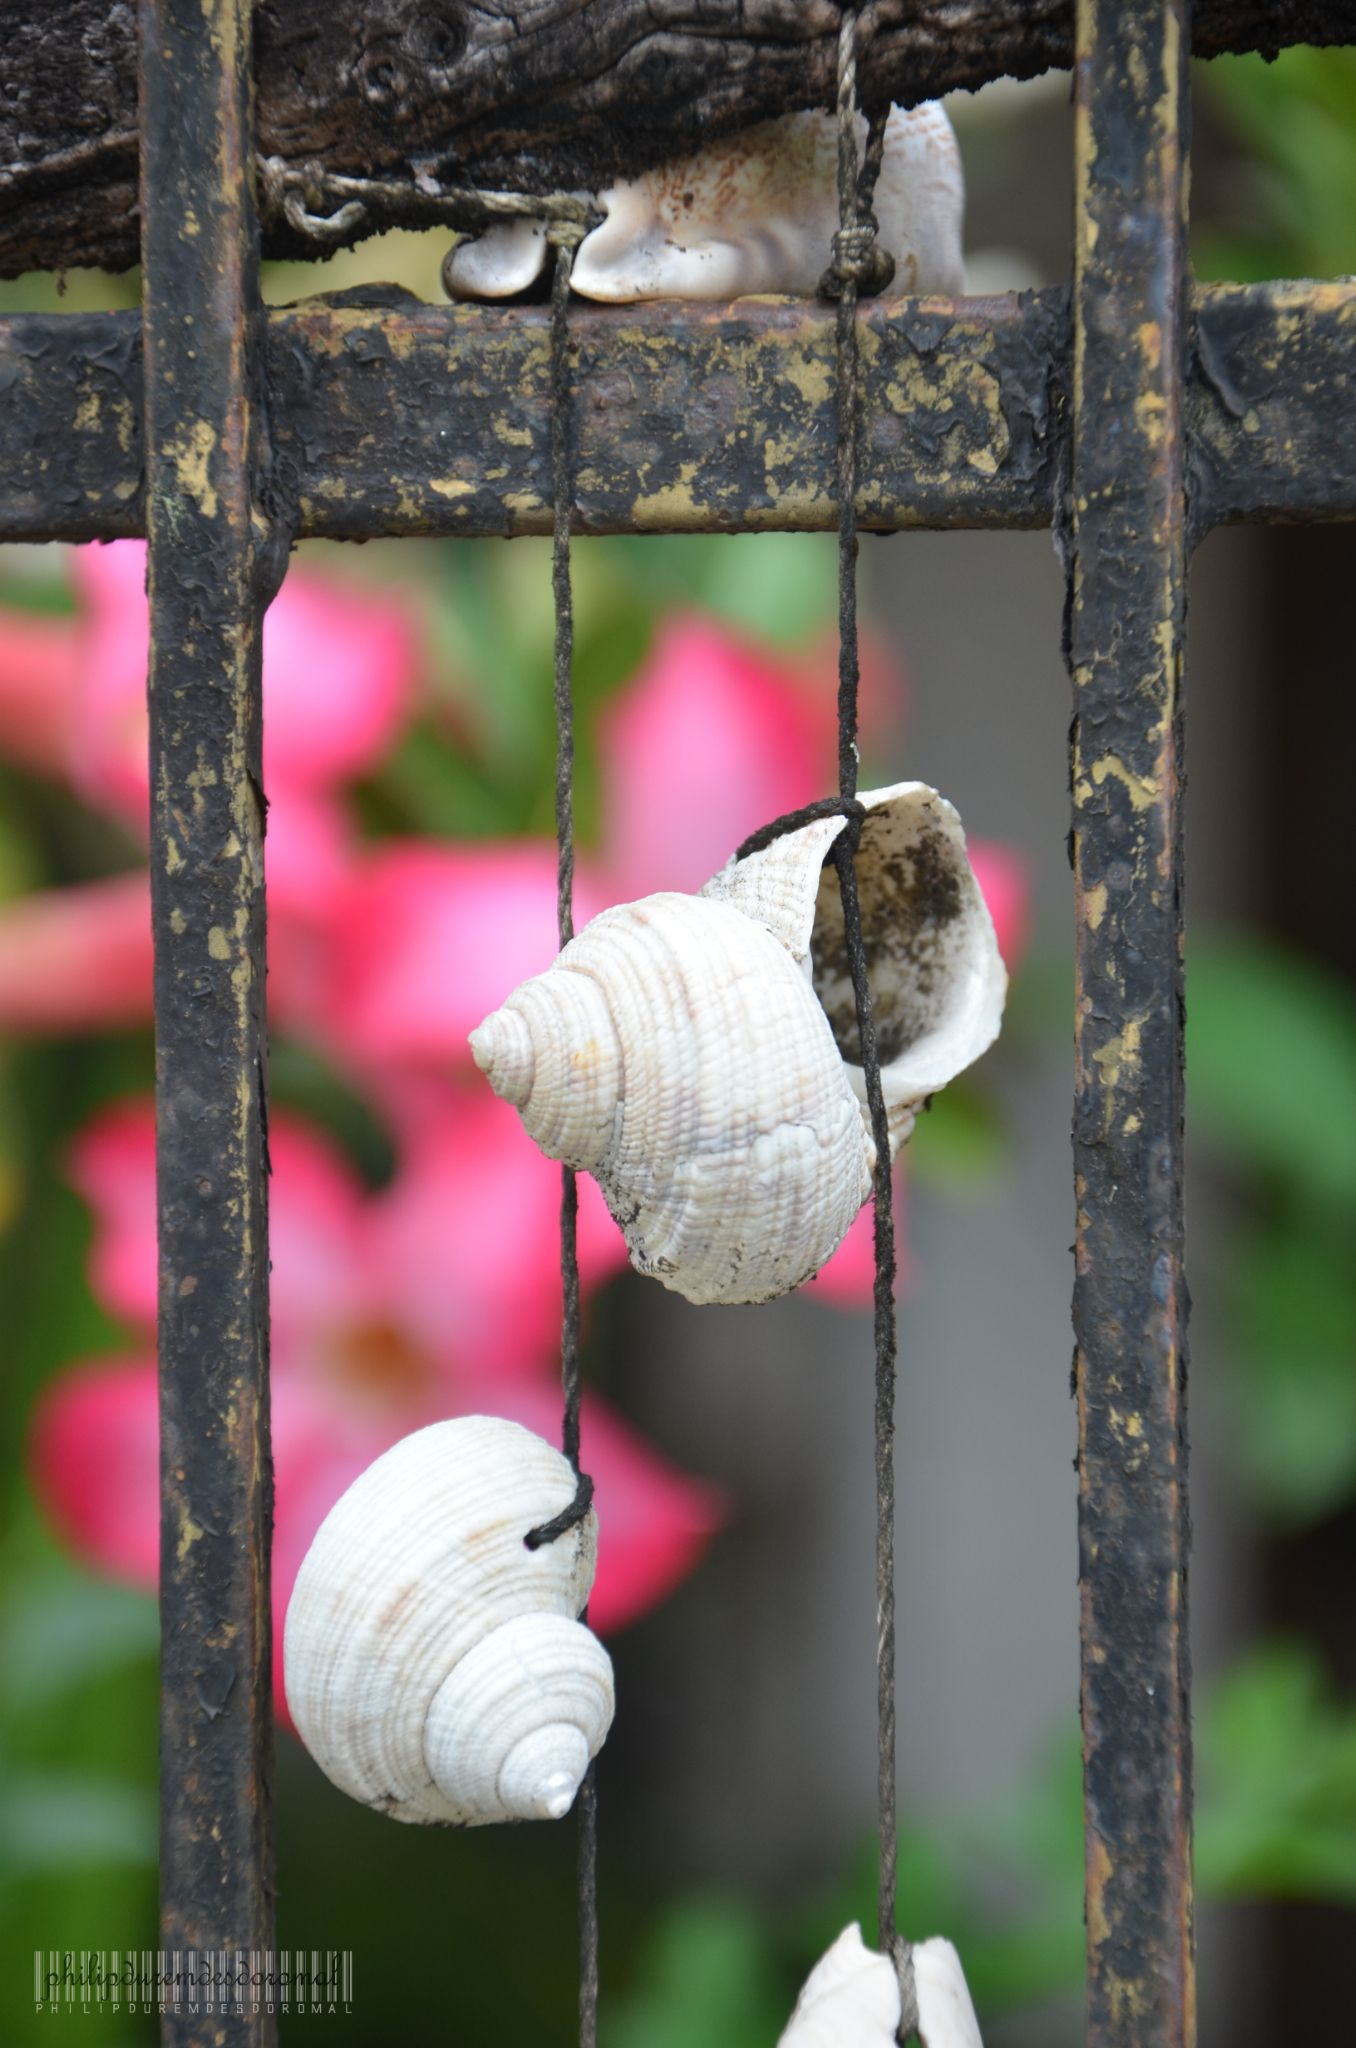 Shells by Philip